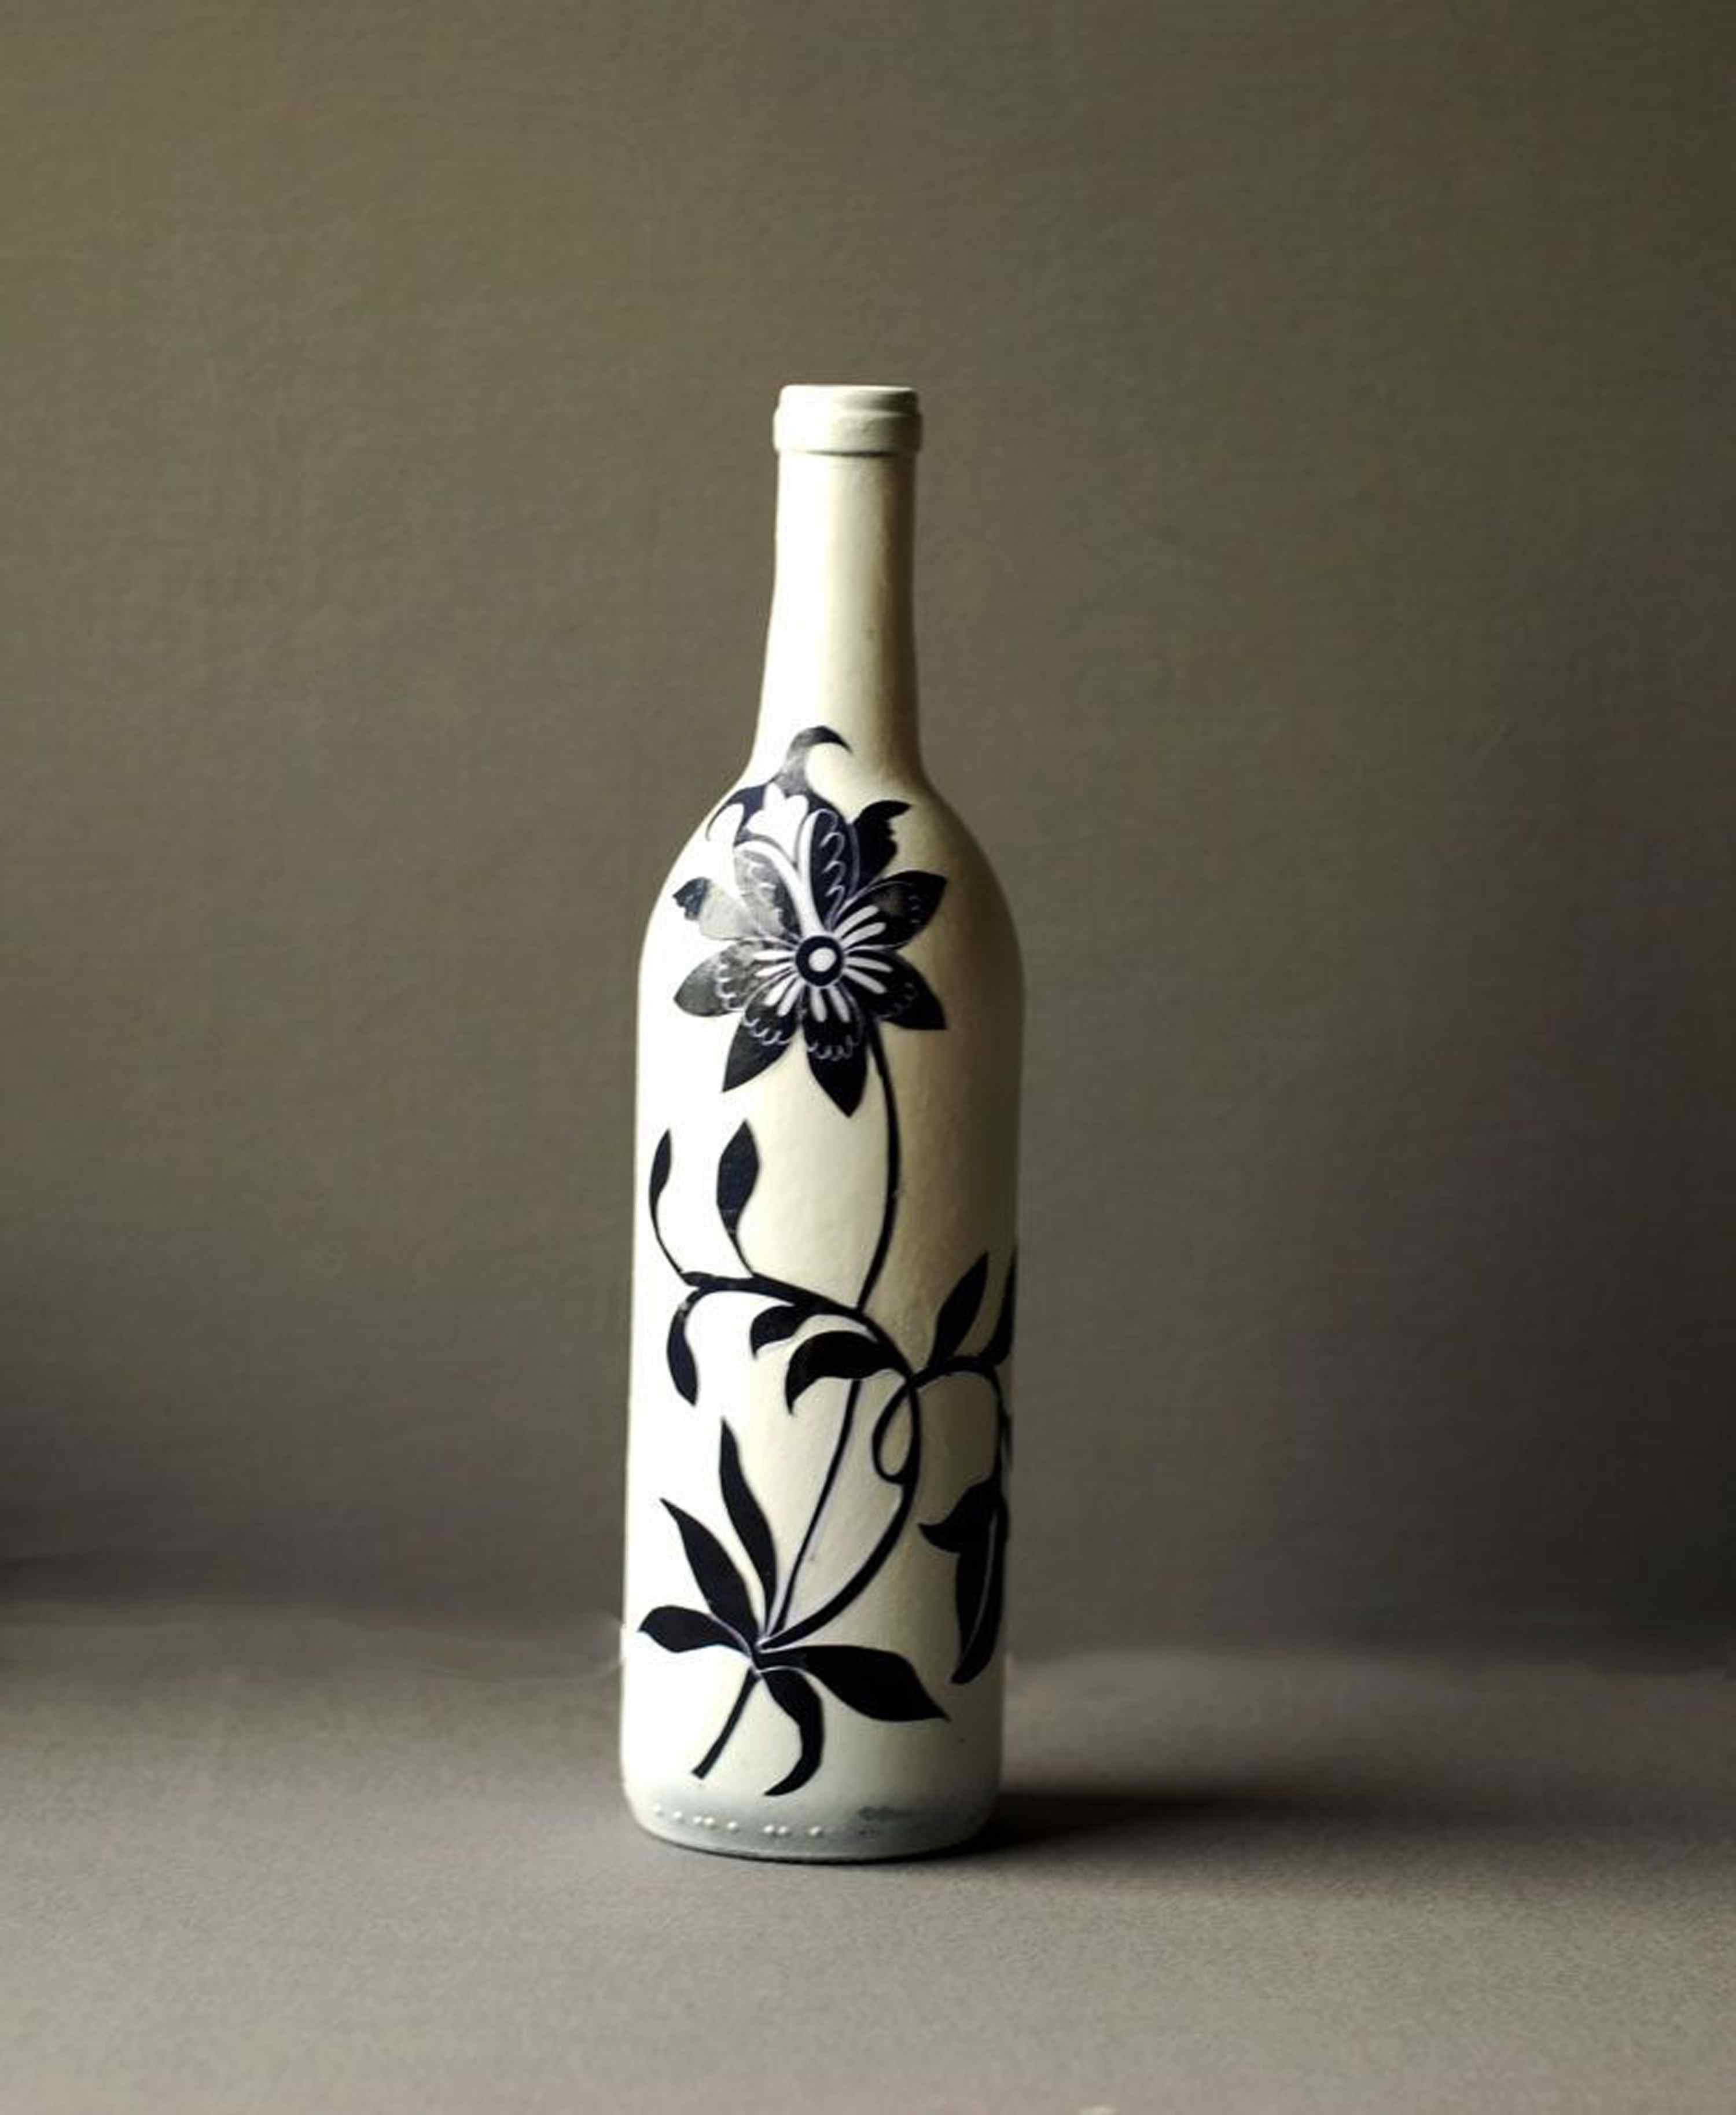 clear glass bottle vase of asian style recycled decoupage wine bottle craft for decoupaged wine bottle 58bcb5685f9b58af5cc40cbb